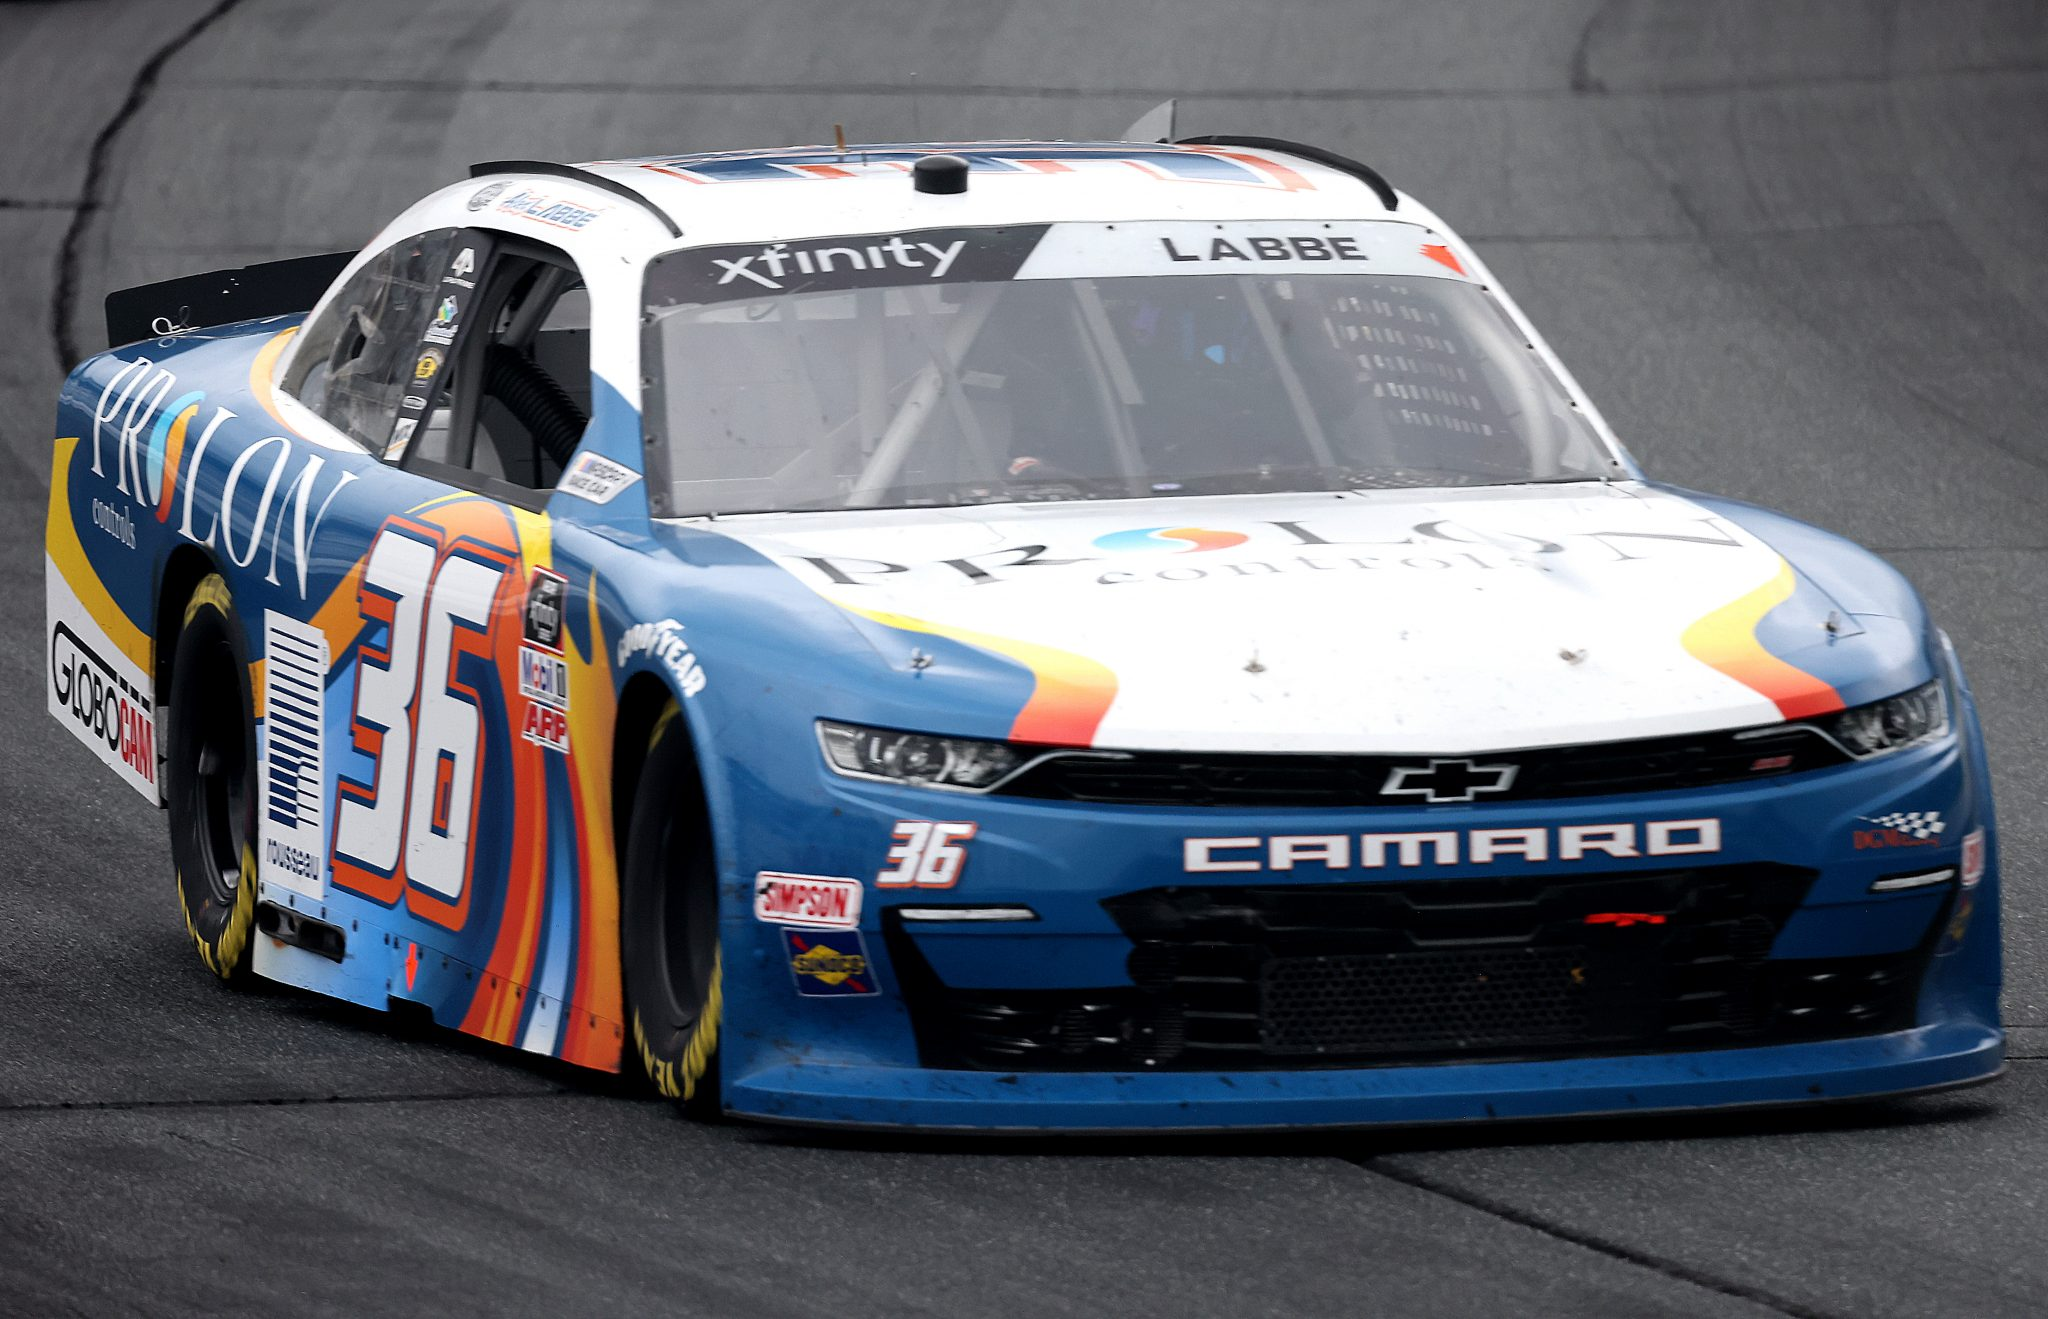 LOUDON, NEW HAMPSHIRE - JULY 17: Alex Labbe, driver of the #36 Prolon/rousseau/Silver Wax Chevrolet, drives during the NASCAR Xfinity Series Ambetter Get Vaccinated 200 at New Hampshire Motor Speedway on July 17, 2021 in Loudon, New Hampshire. (Photo by James Gilbert/Getty Images) | Getty Images